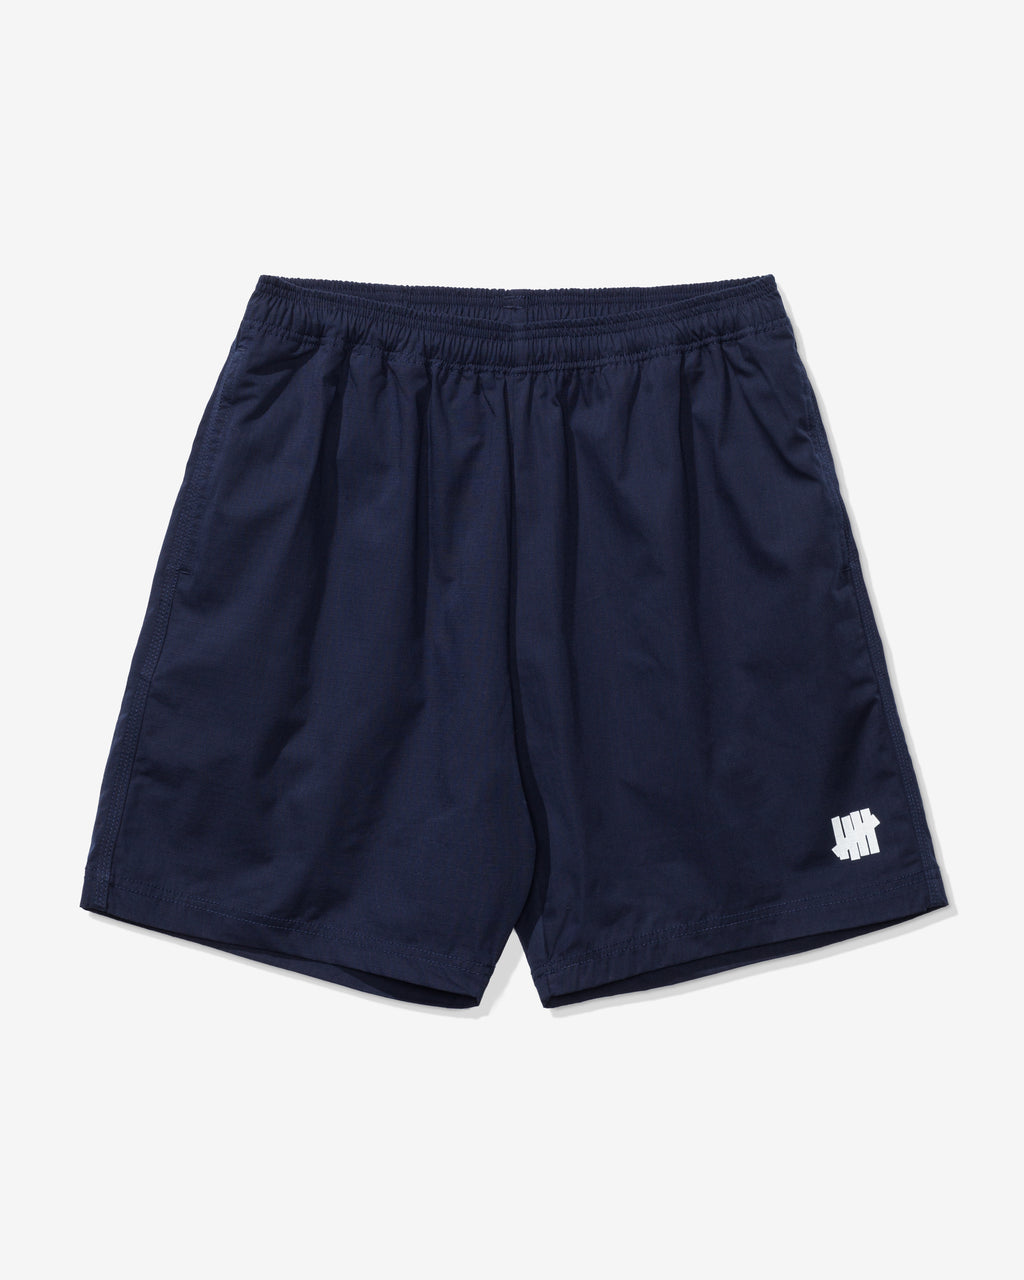 UNDEFEATED RIPSTOP SHORT - NAVY